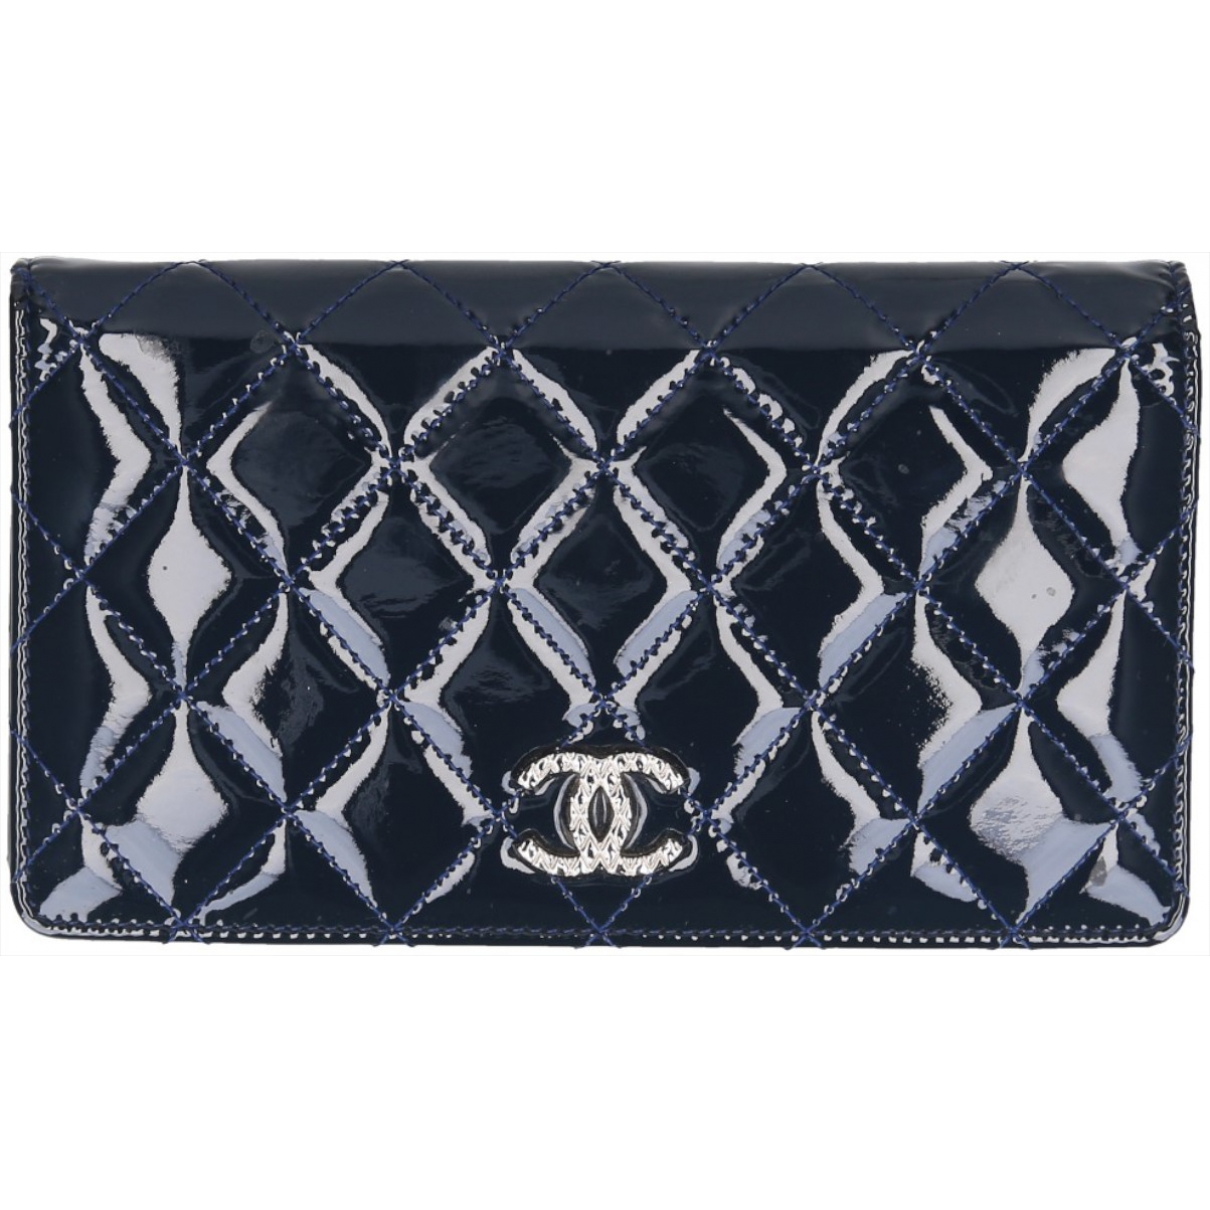 Chanel \N Blue Patent leather wallet for Women \N